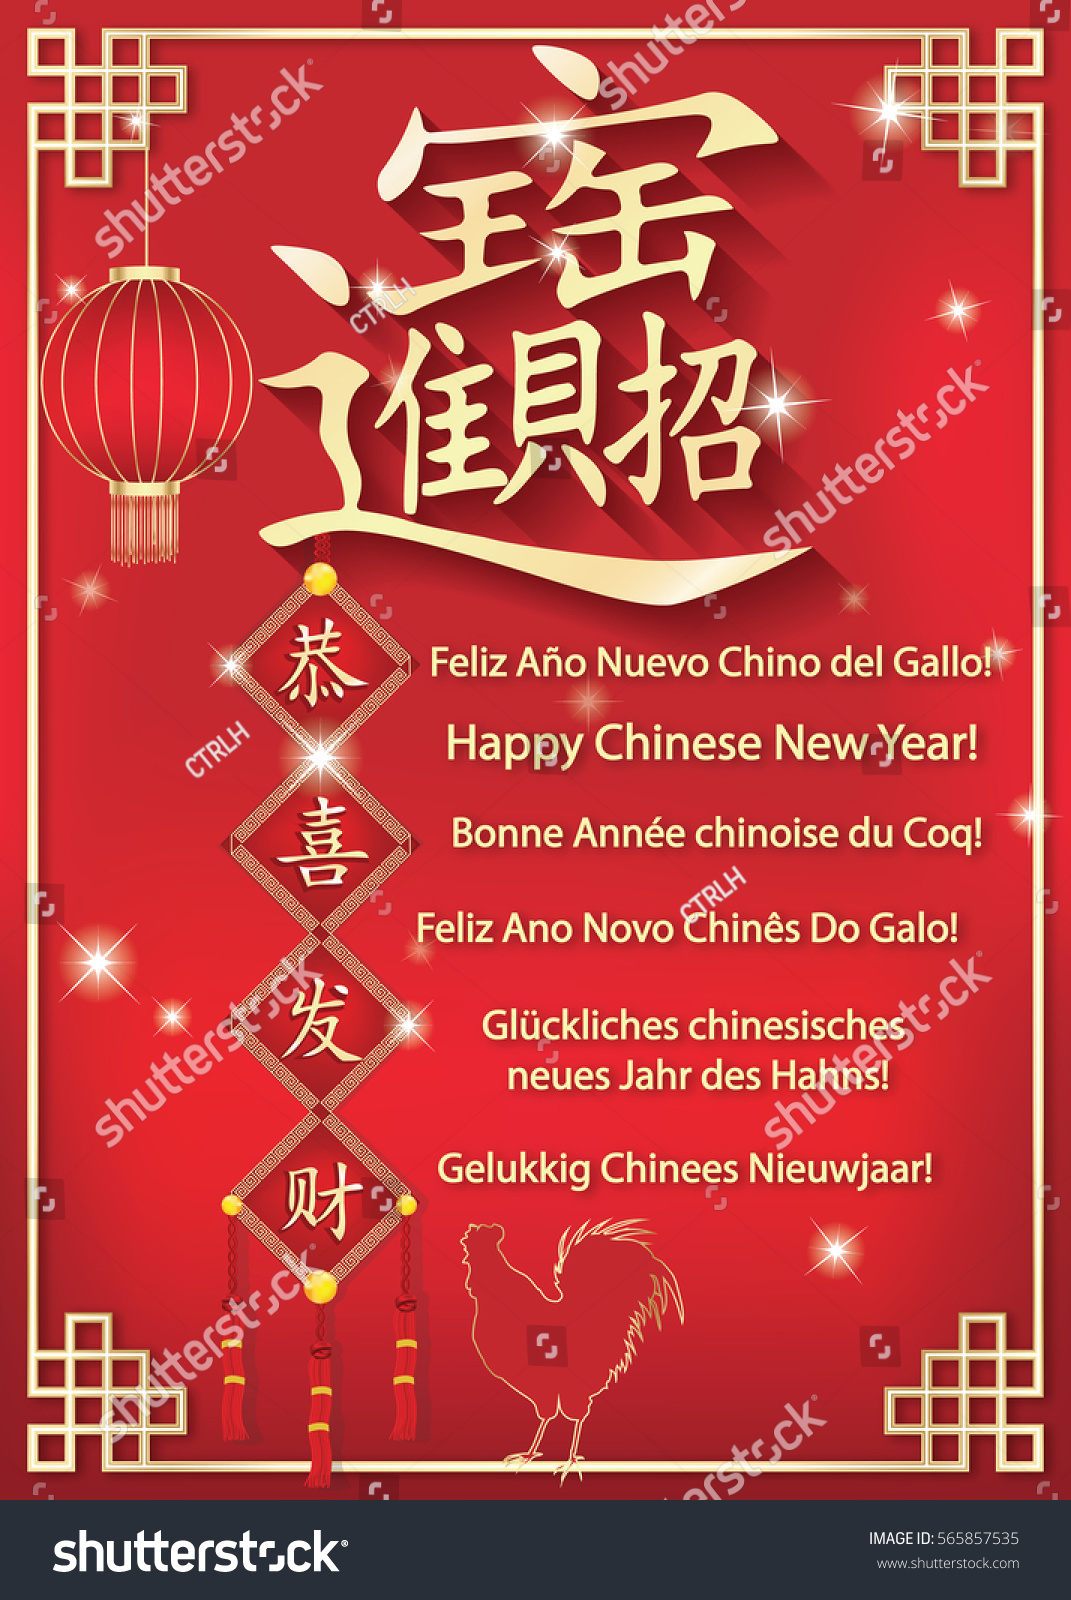 Chinese new year card wishes many stock illustration 565857535 chinese new year card with wishes in many languages spanish english french kristyandbryce Image collections